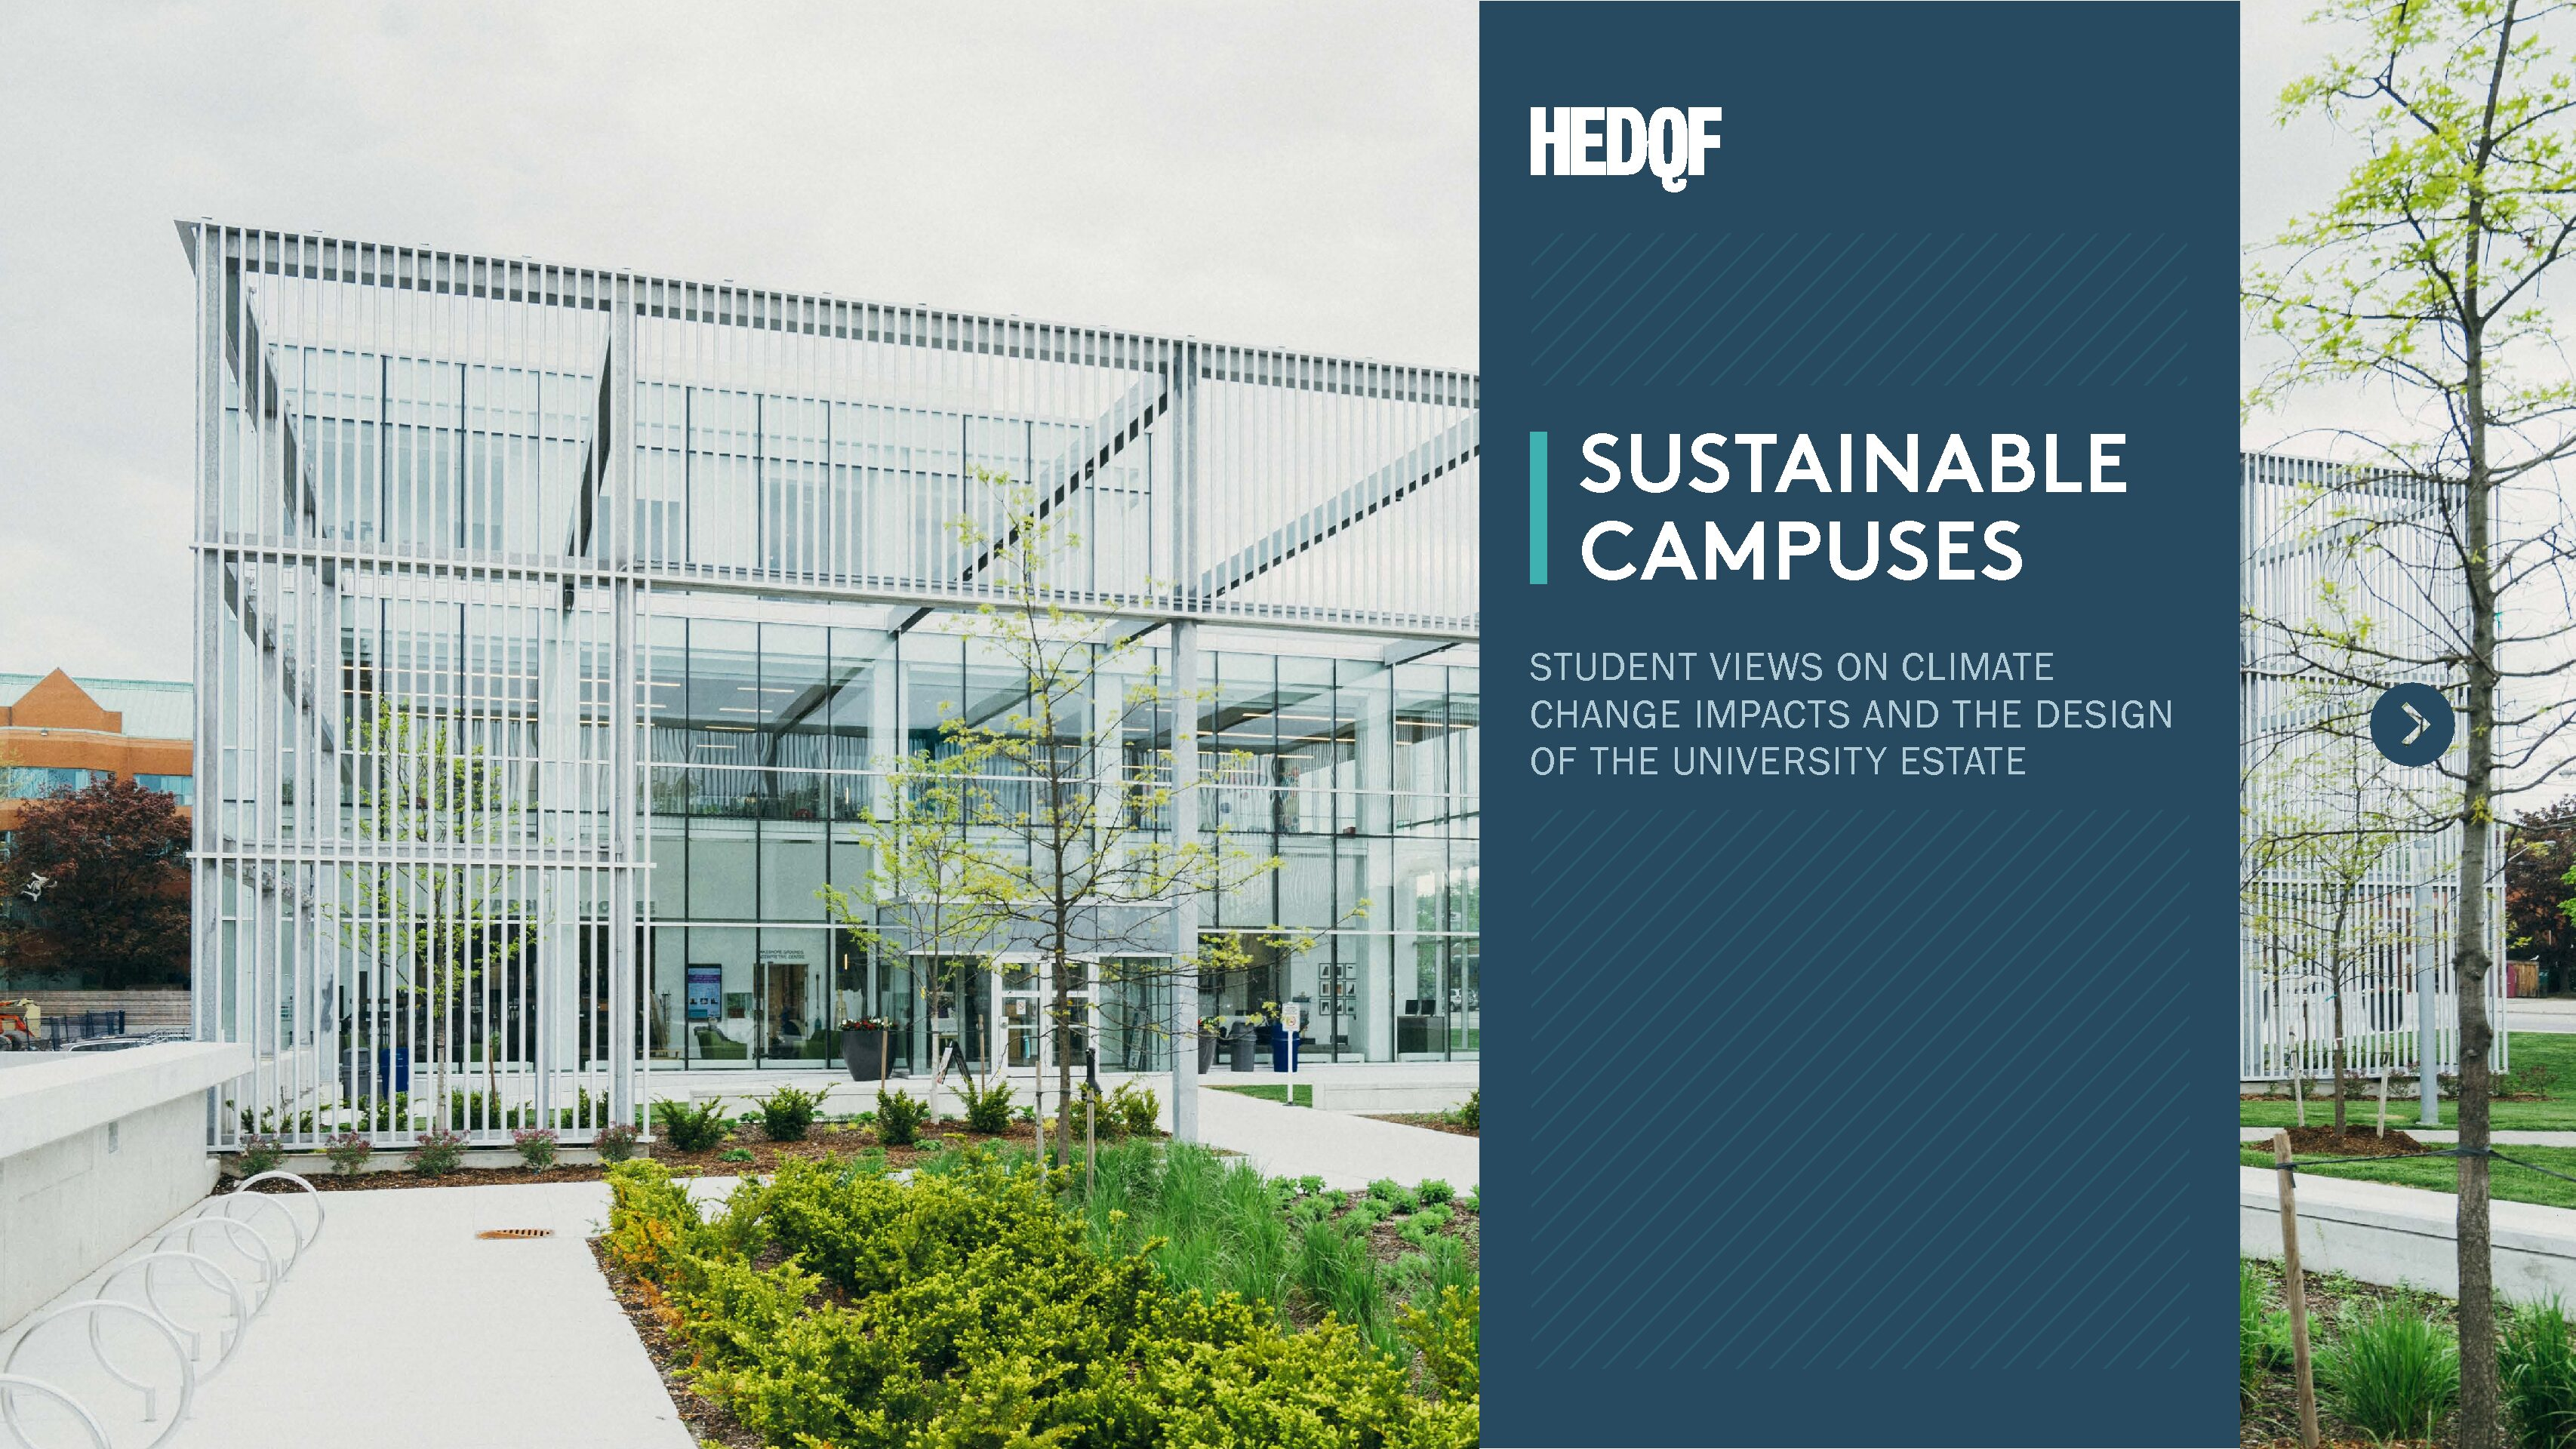 Sustainable Campuses (executive summary) (March 2021)